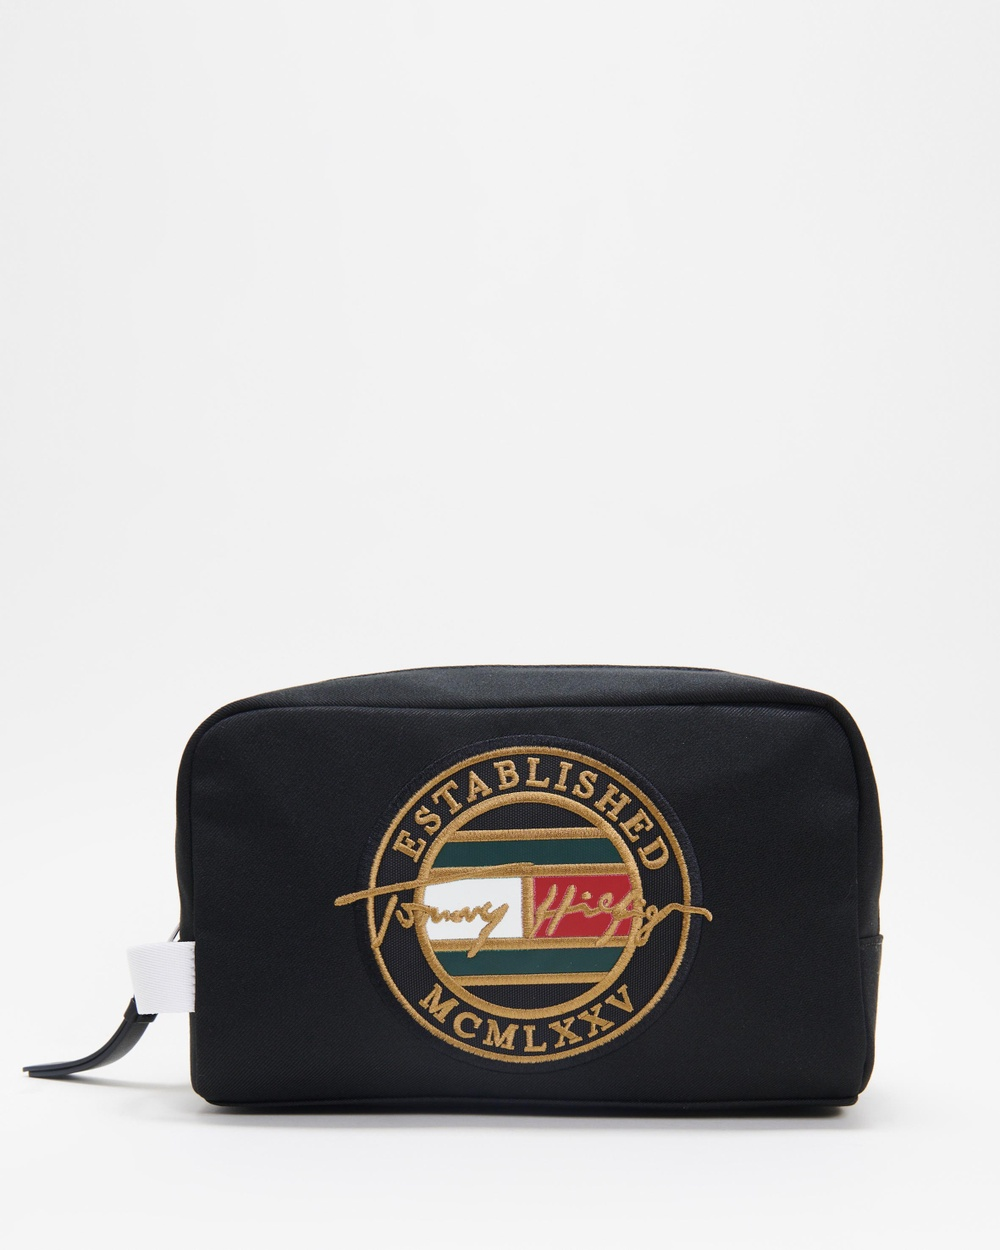 Tommy Hilfiger Signature Washbag Toiletry Bags Black